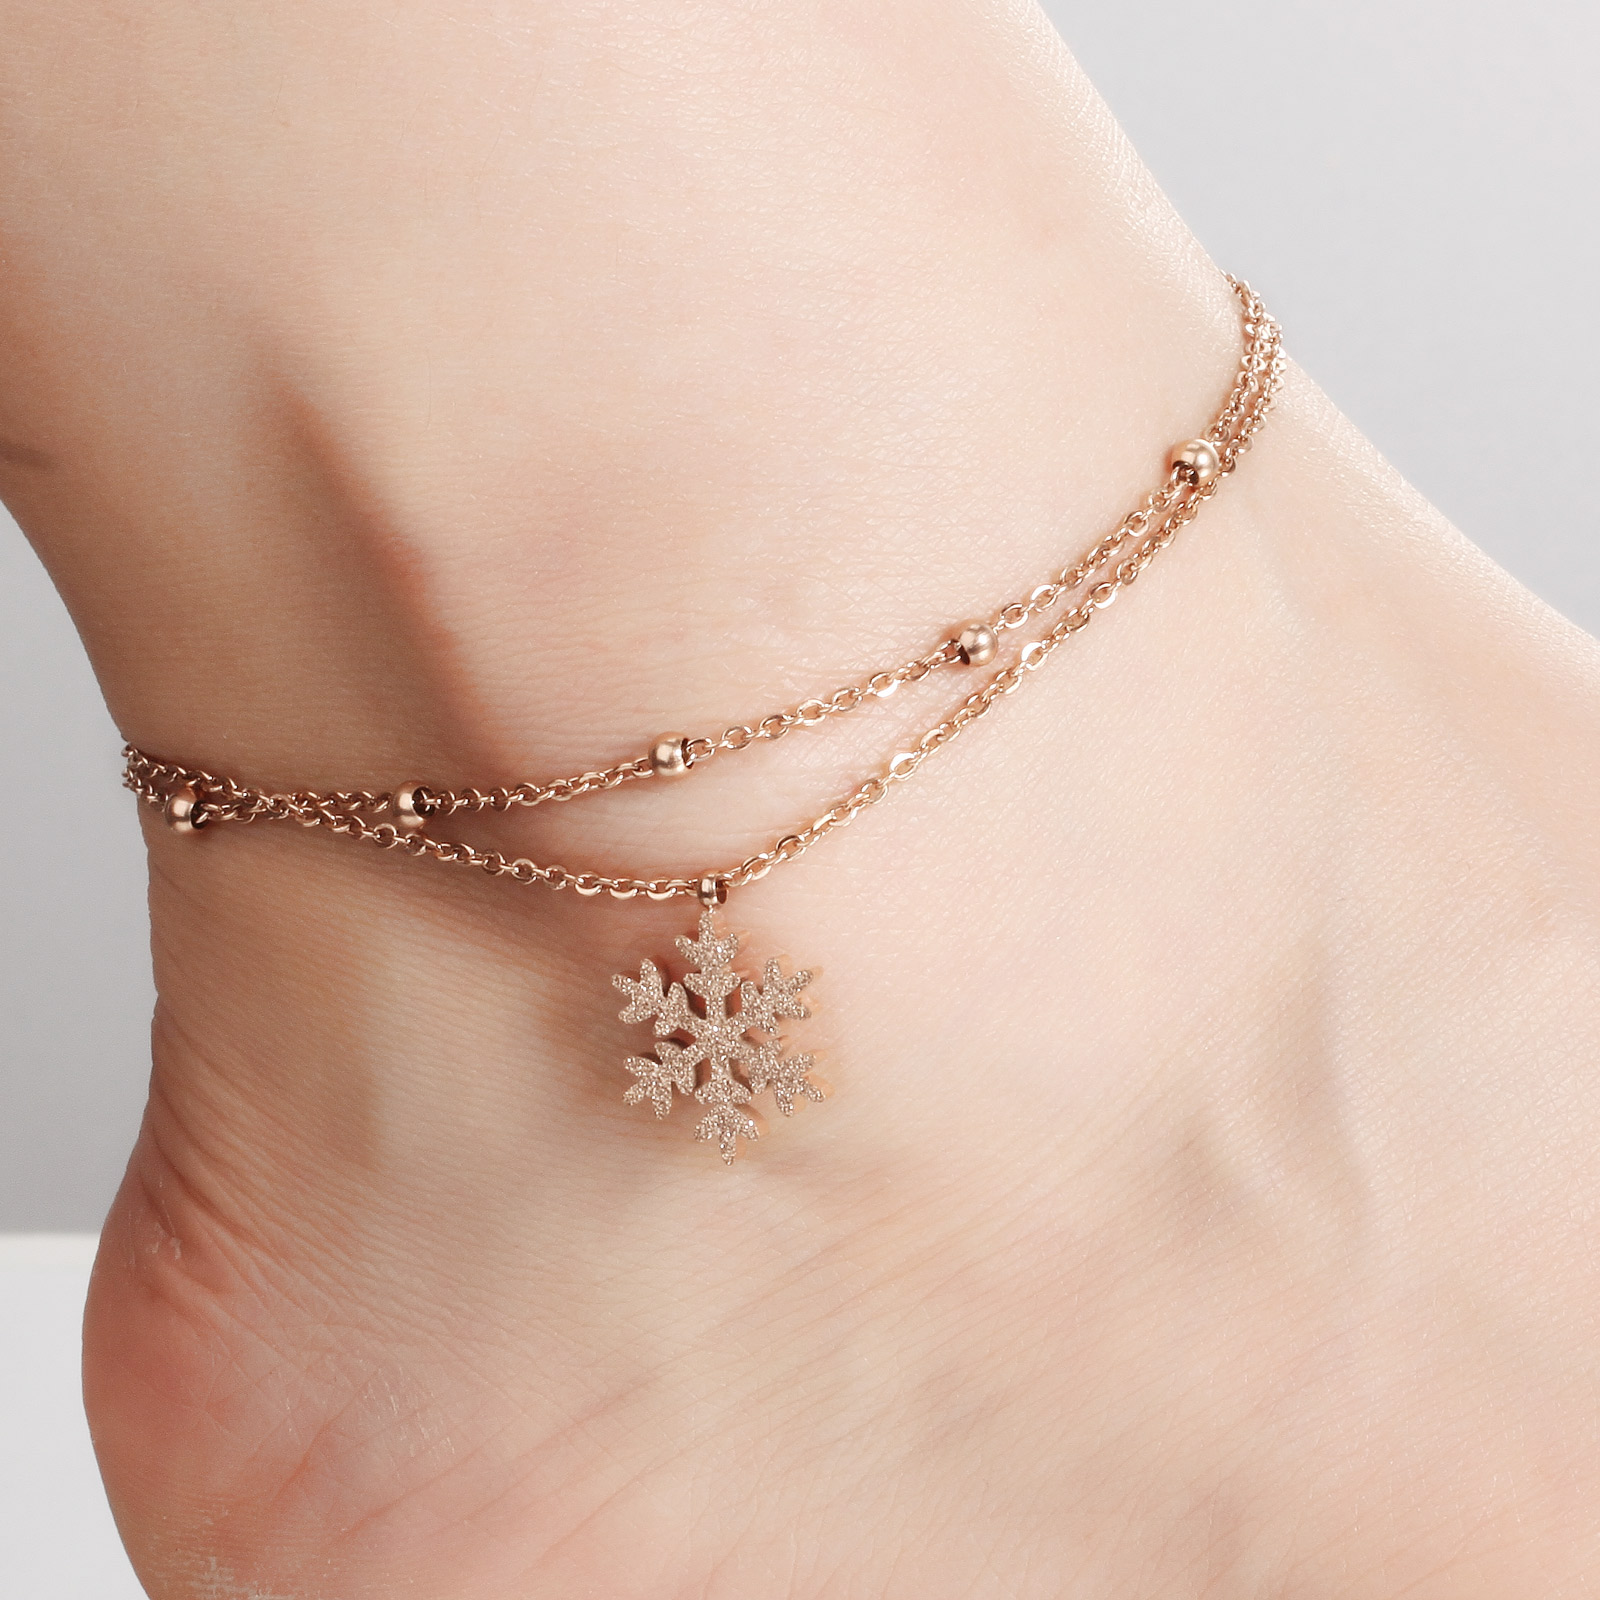 beads bridal gold jewelry flower vintage ankle women leg gift product anklet s antique from anklets bracelet exquisite white lyso beach plated feet tassel chain